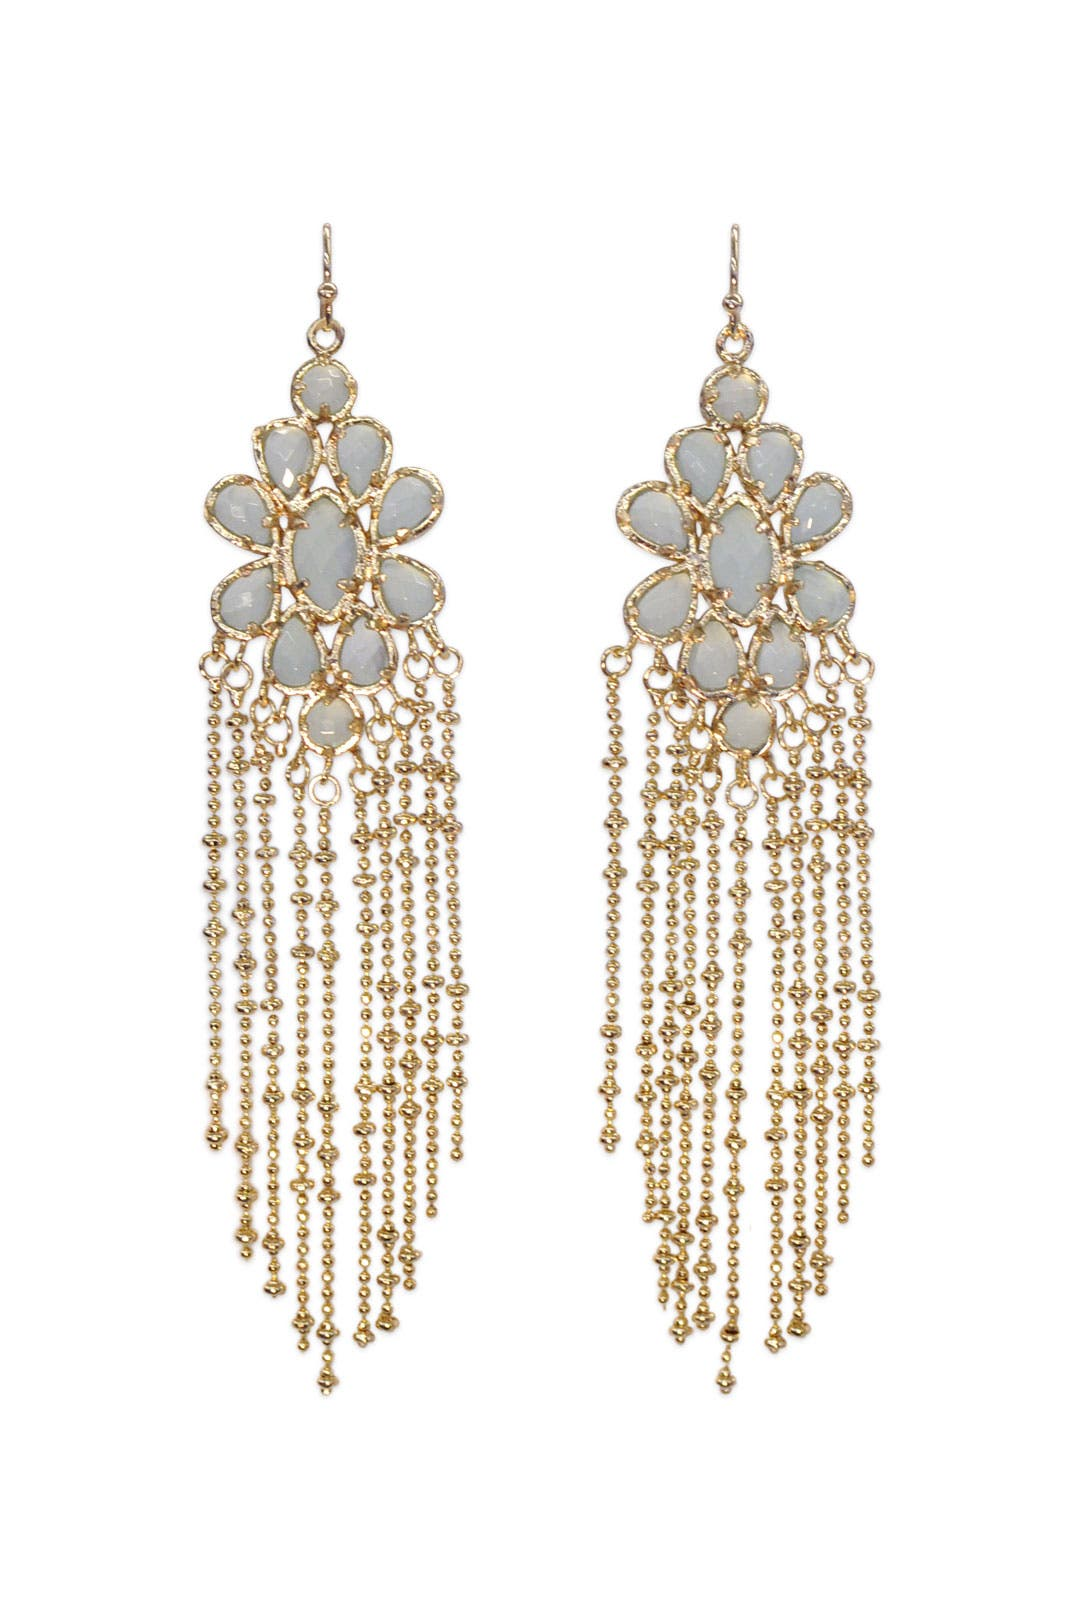 Chalcedony Rain Earrings by Kendra Scott